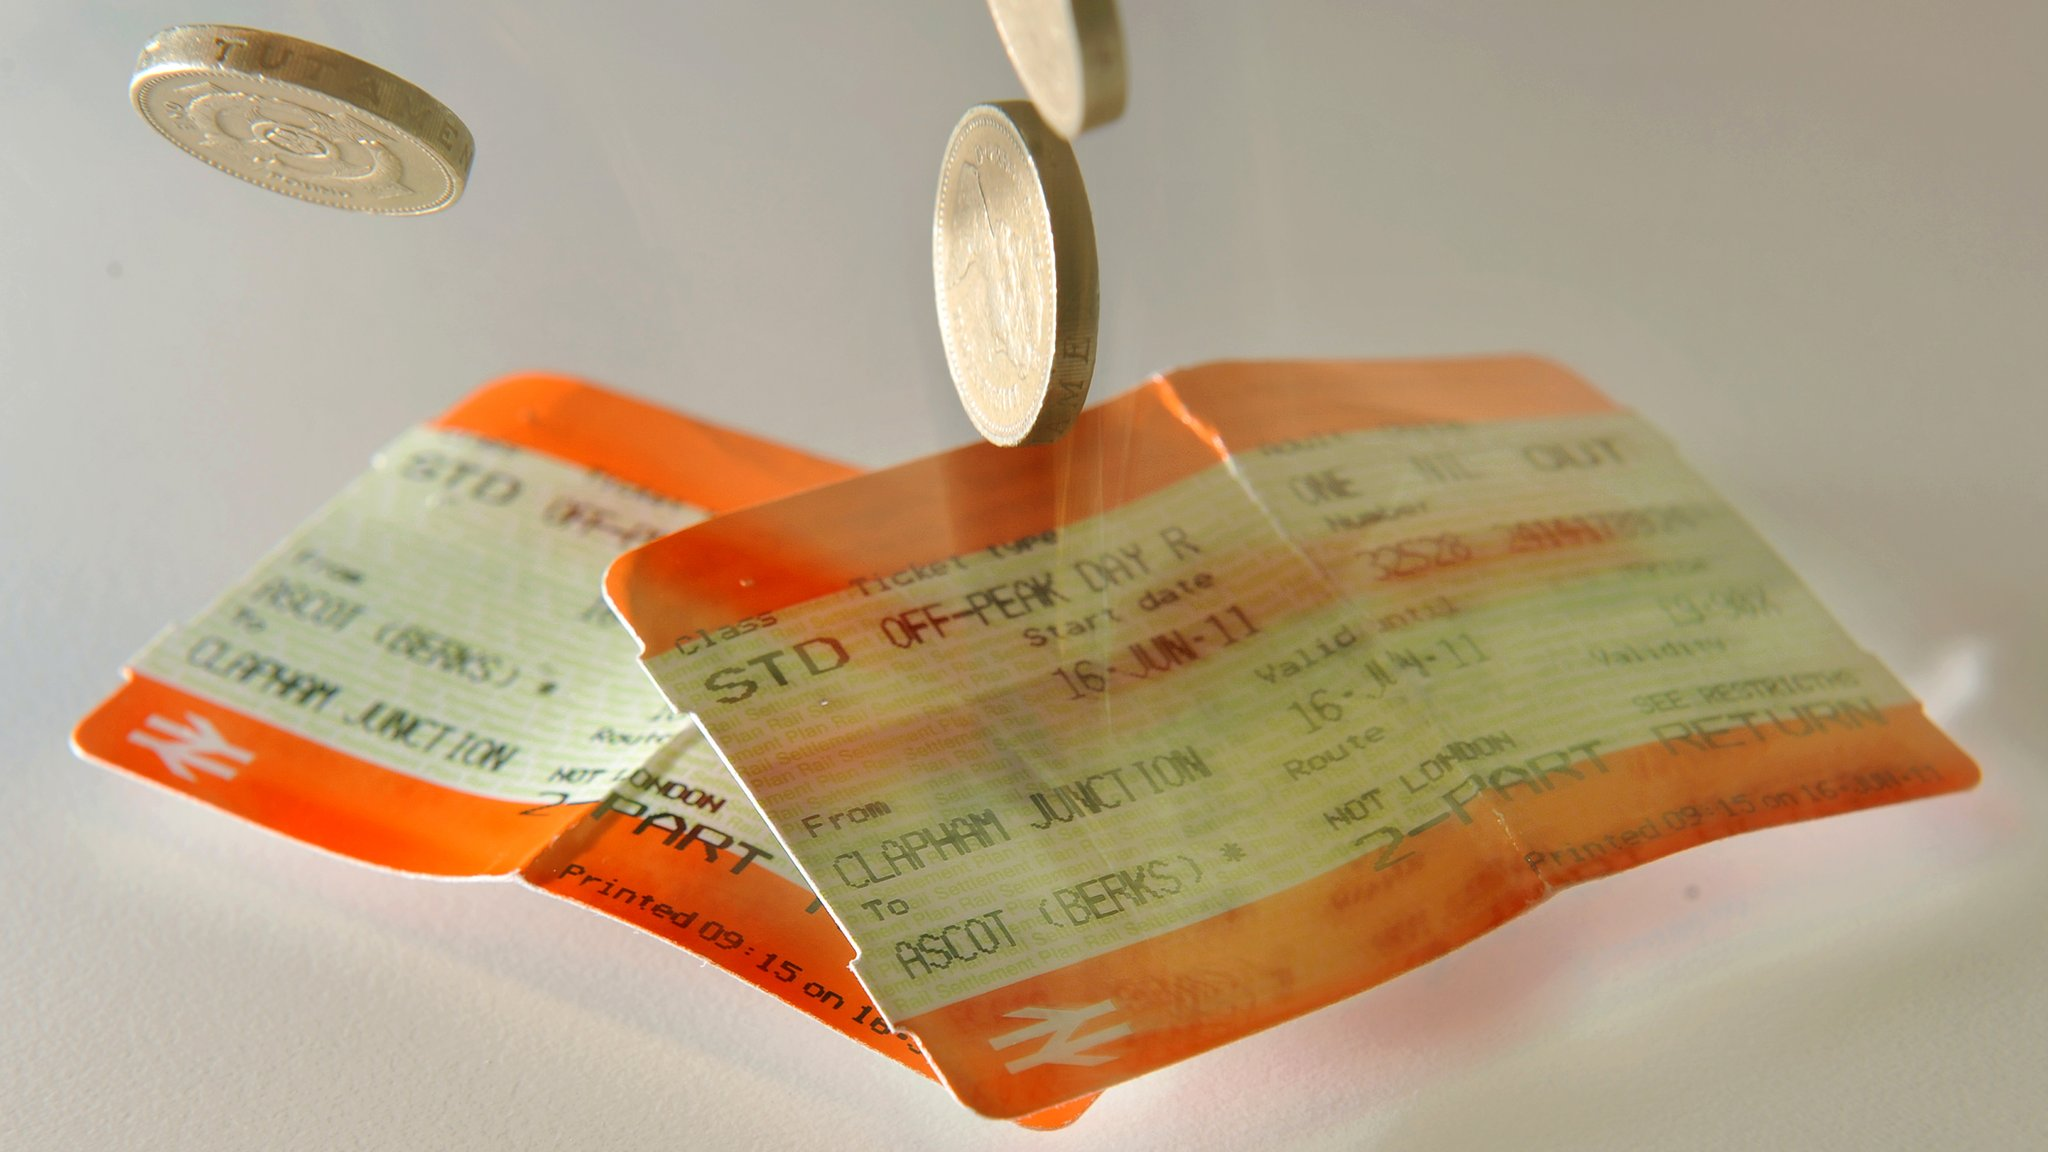 Rail firms 'consider' railcard for 26 to 30-year-olds